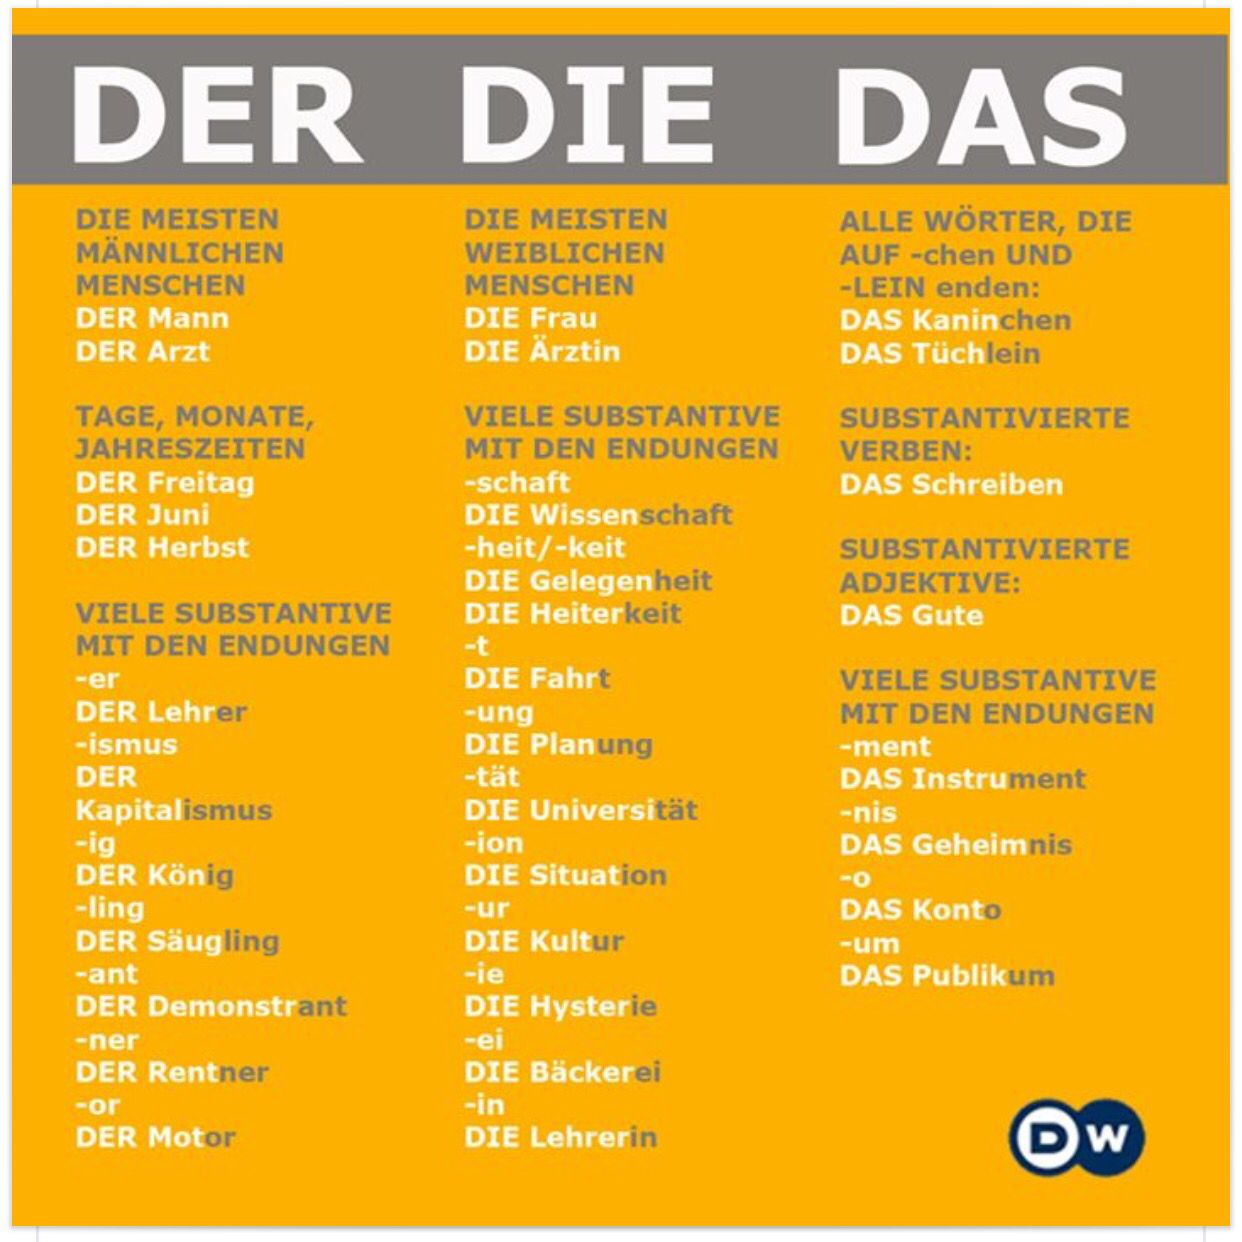 Der Die Das cheat sheet | German Immersion | German ...